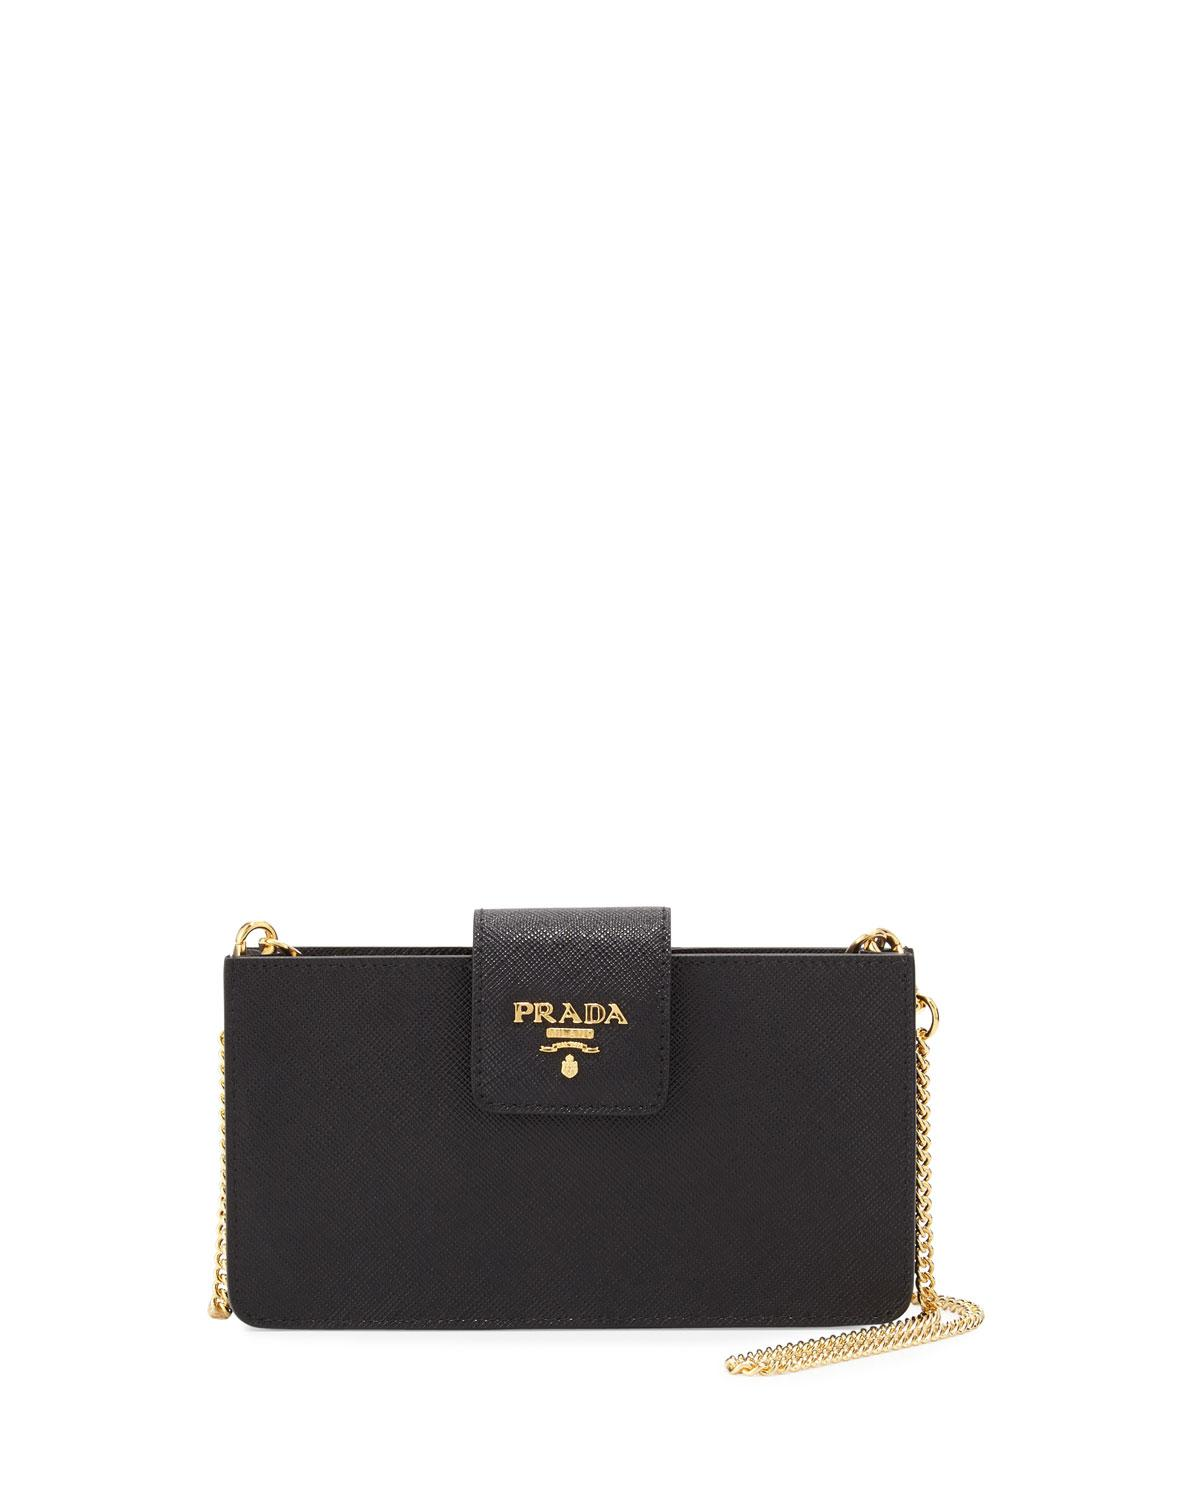 f4d9ffe208c2 Prada Saffiano Phone Crossbody Bag in Black - Lyst